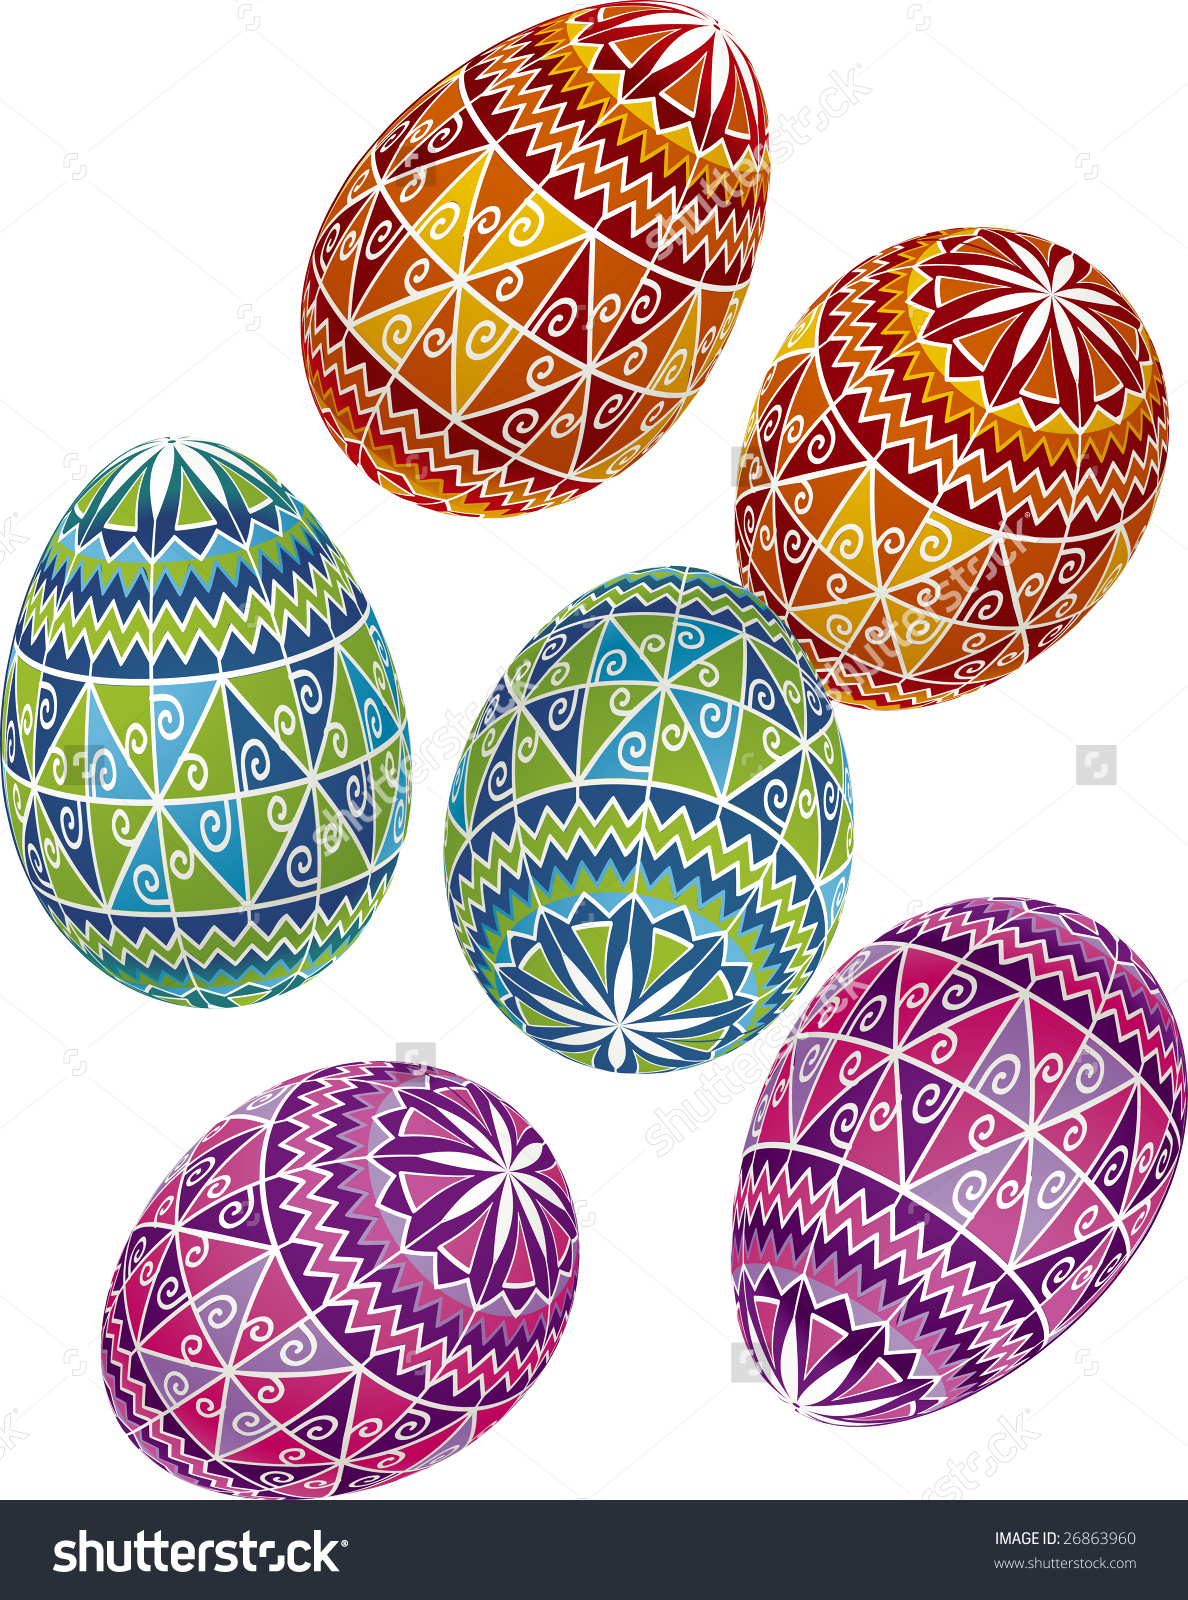 Ukranian easter egg clipart vector transparent library Vector Illustration Bright Painted Easter Eggs Stock Vector ... vector transparent library